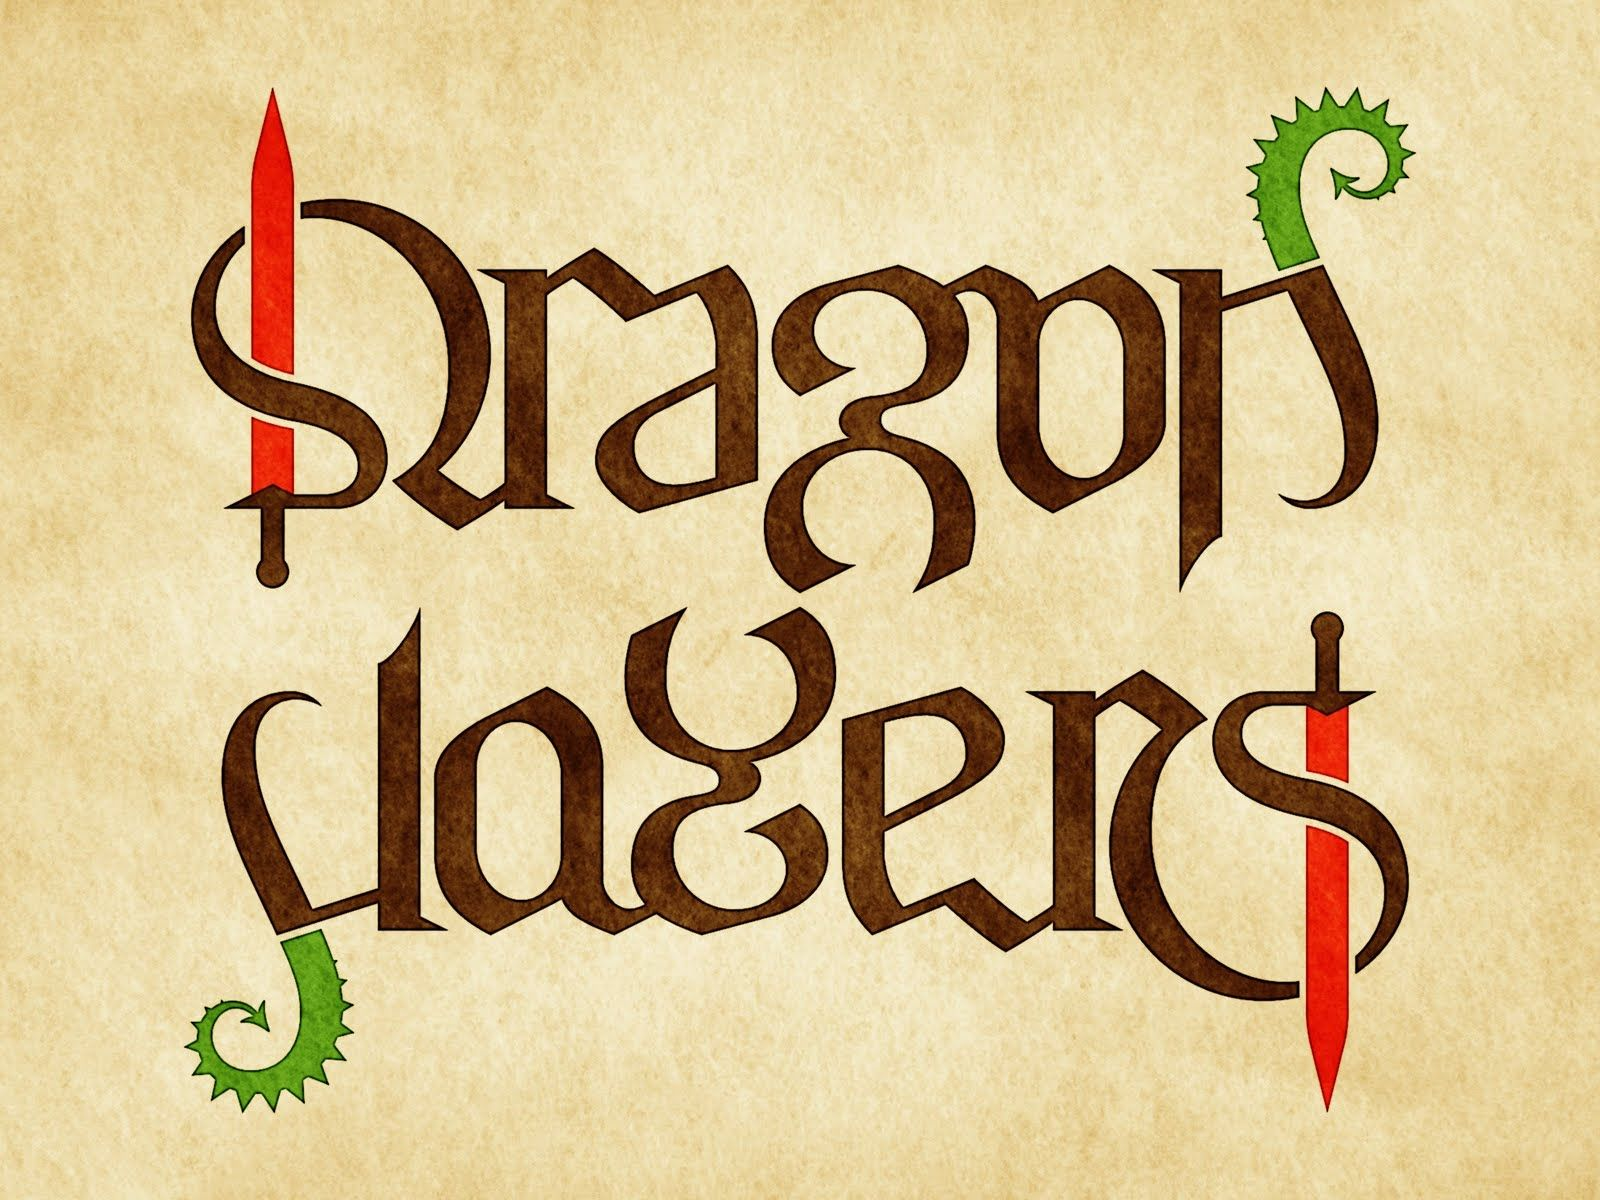 Ambigram dragon slayers